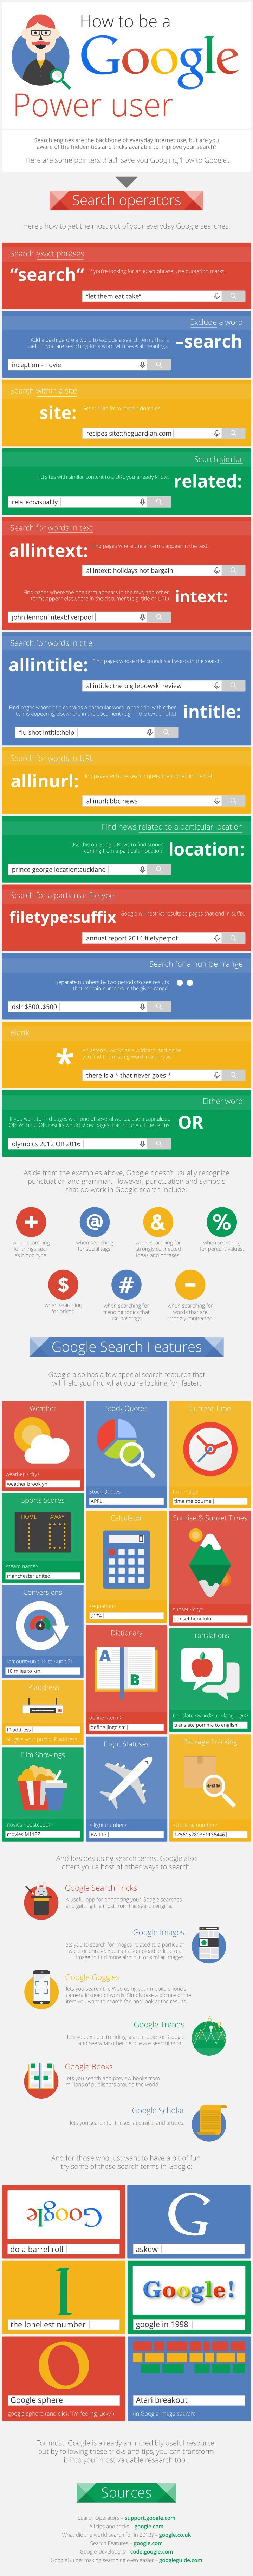 How to be a Google power user. Infographic.